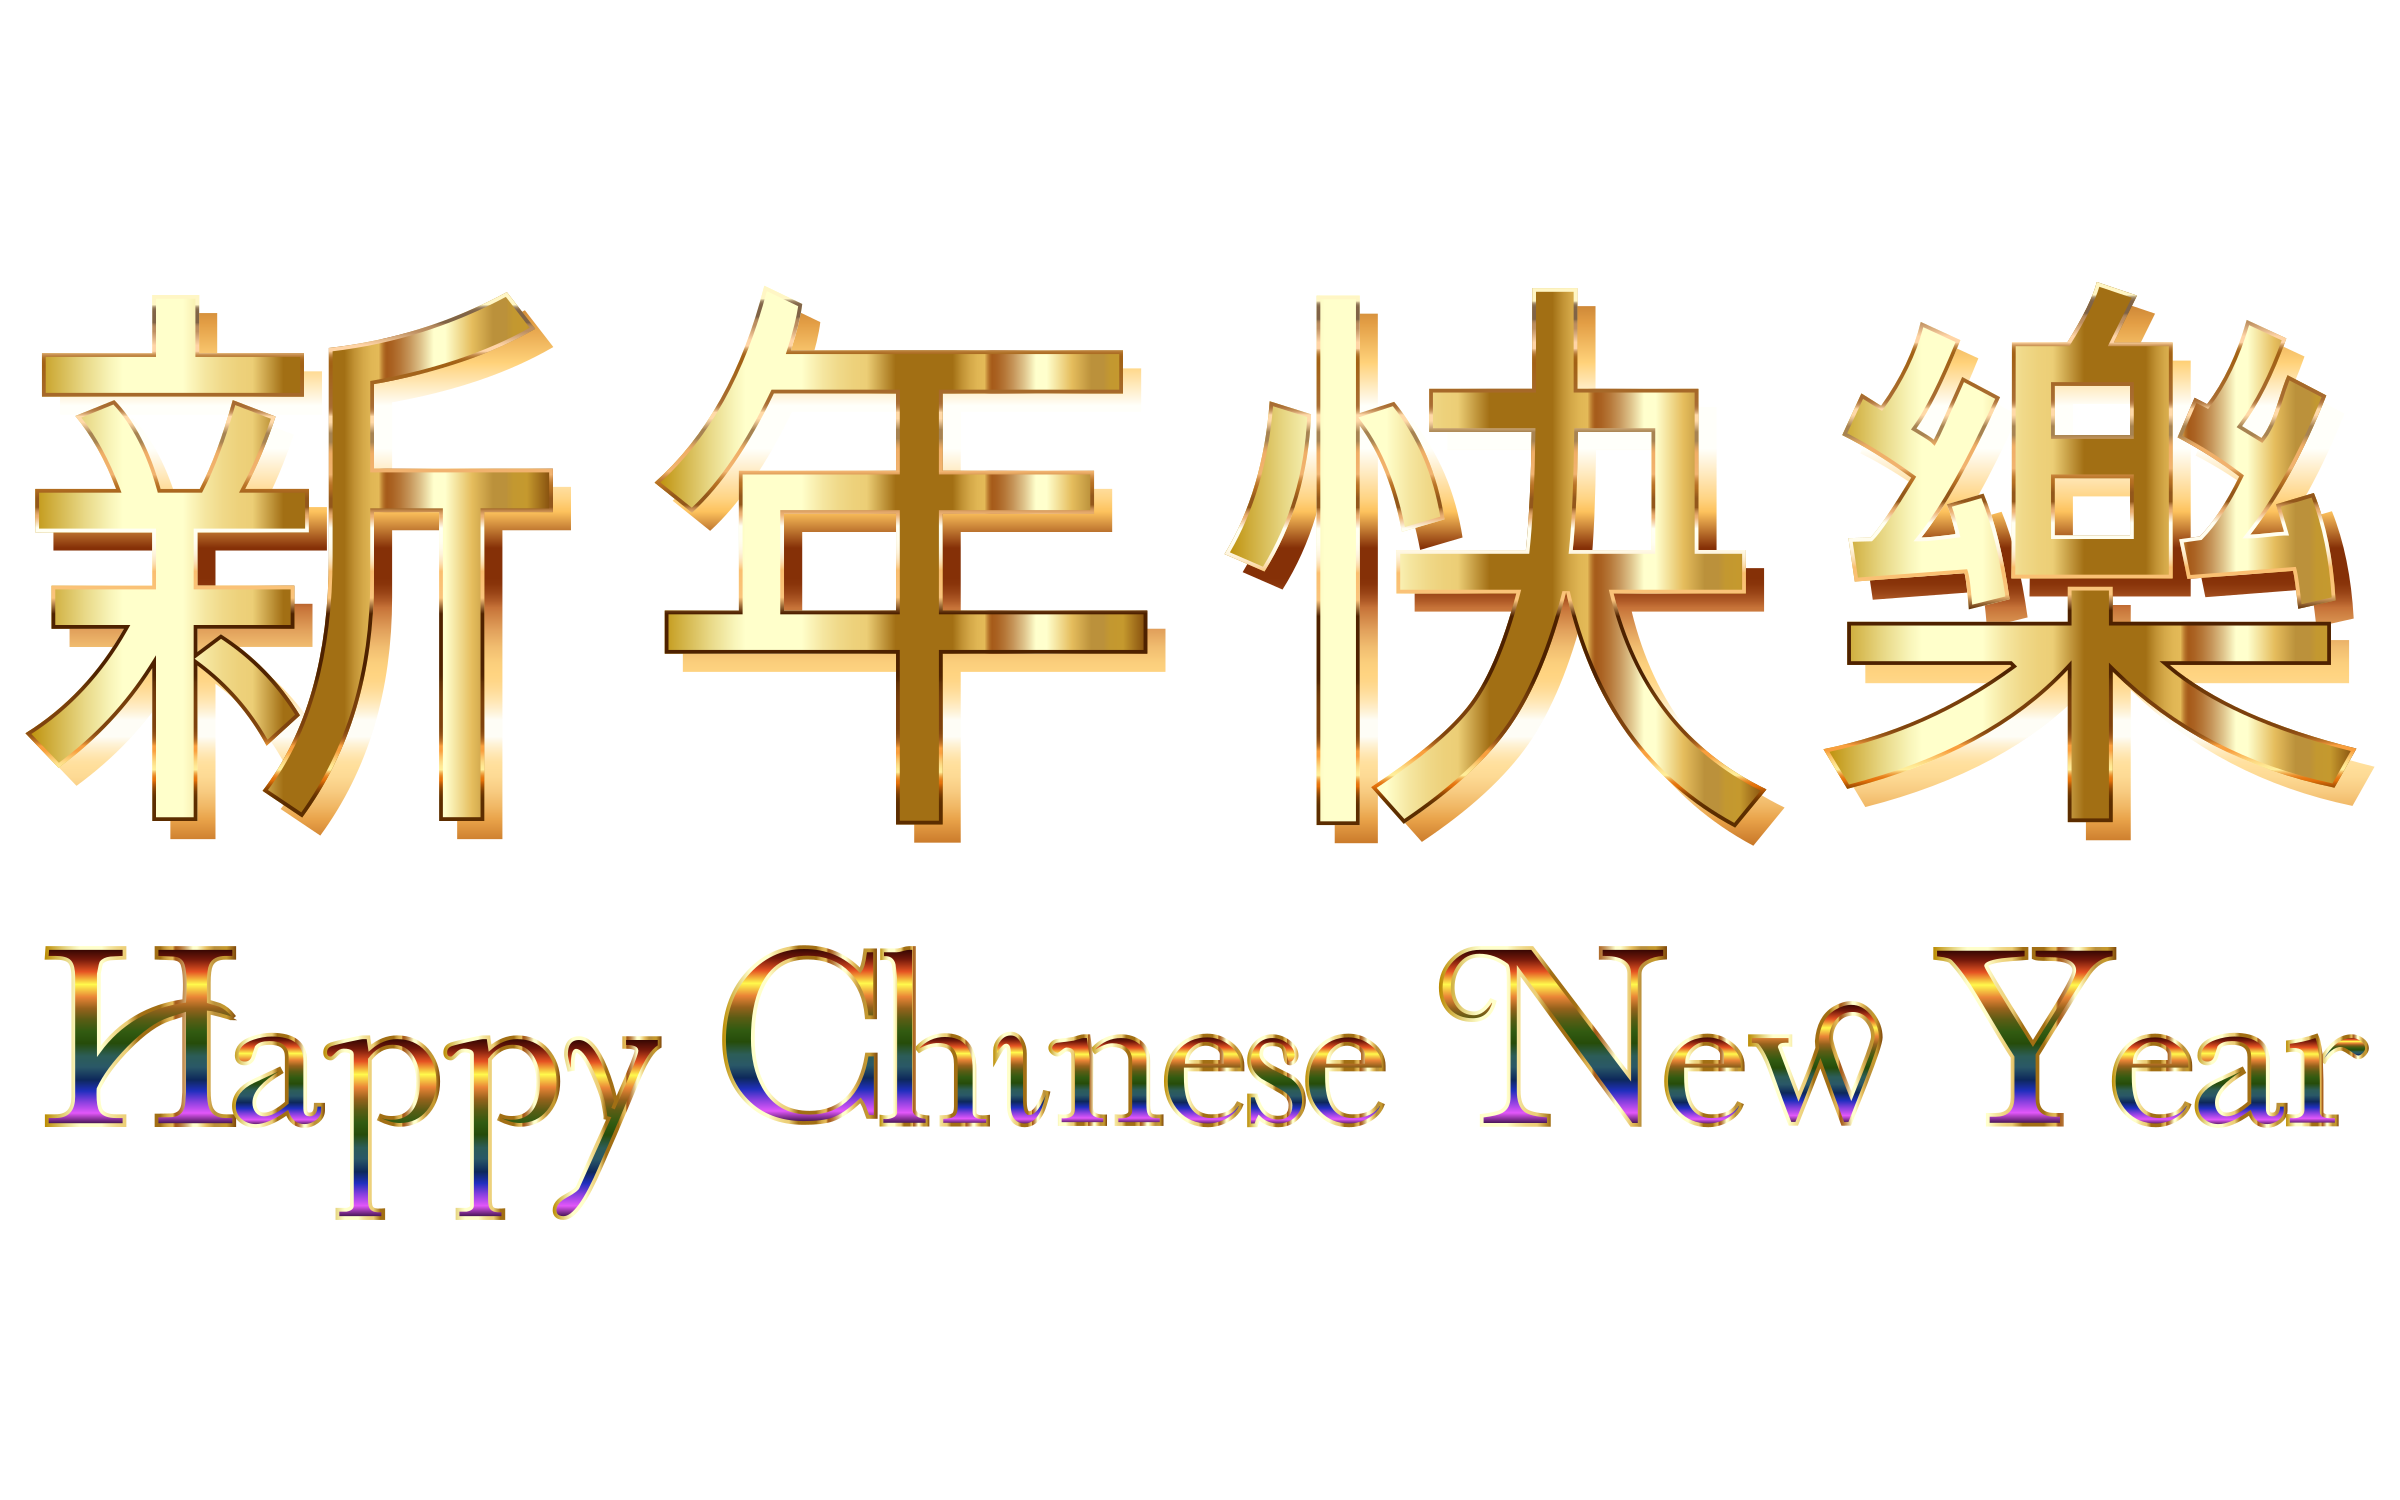 Happy Chinese New Year Chinese Greetings 9to5gifs Pinterest